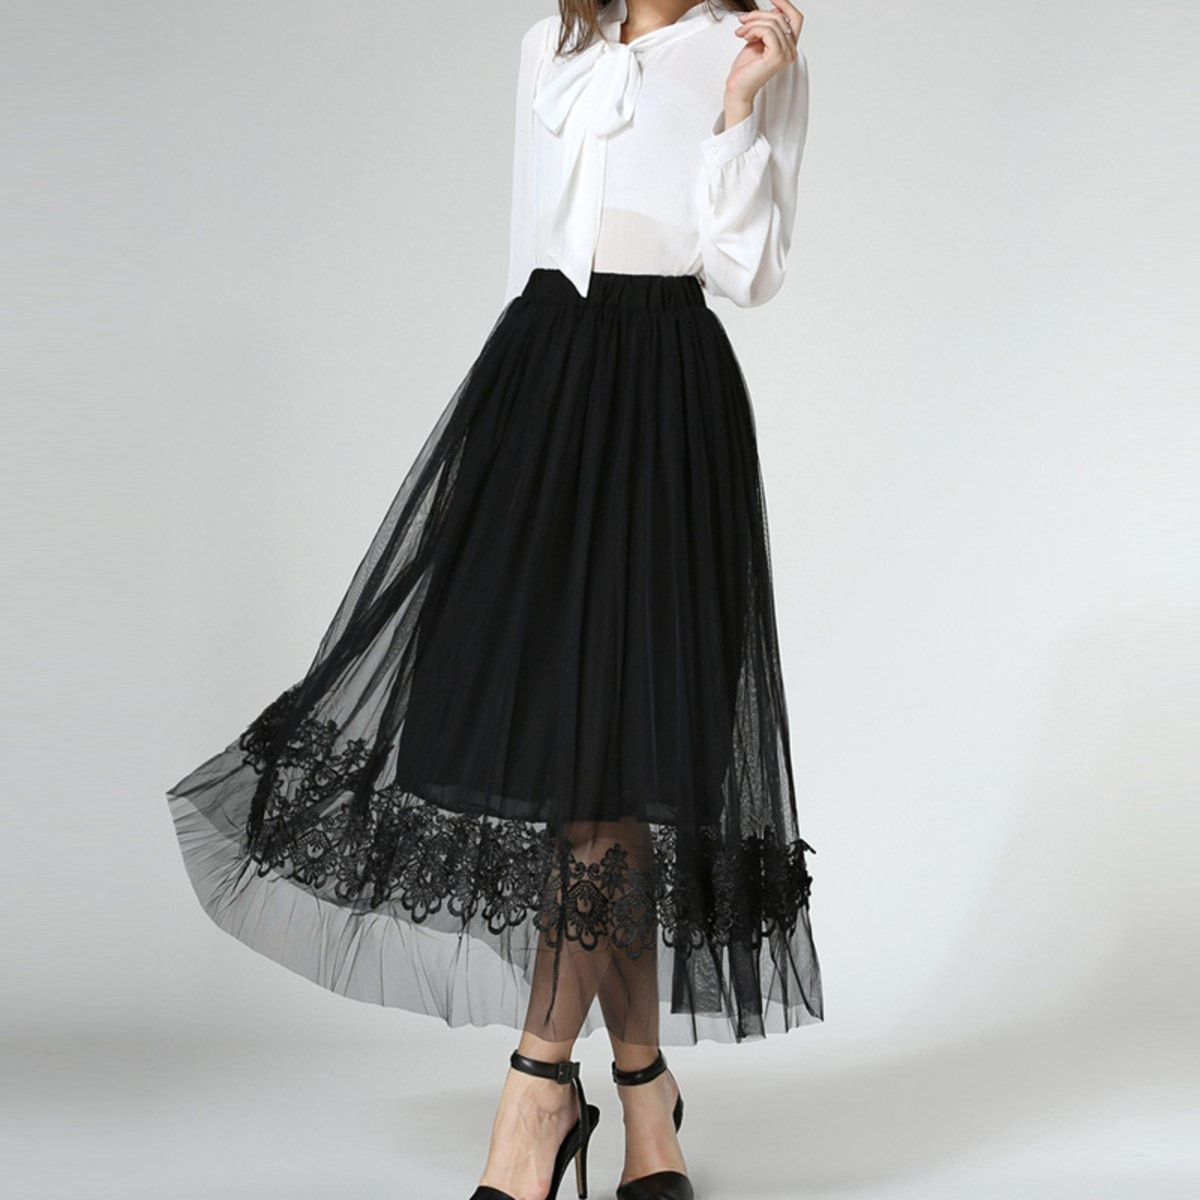 New-Summer-Chic-Mesh-Tulle-font-b-Skirt-b-font-Women-Fashion-Pleated-Floral-font-b